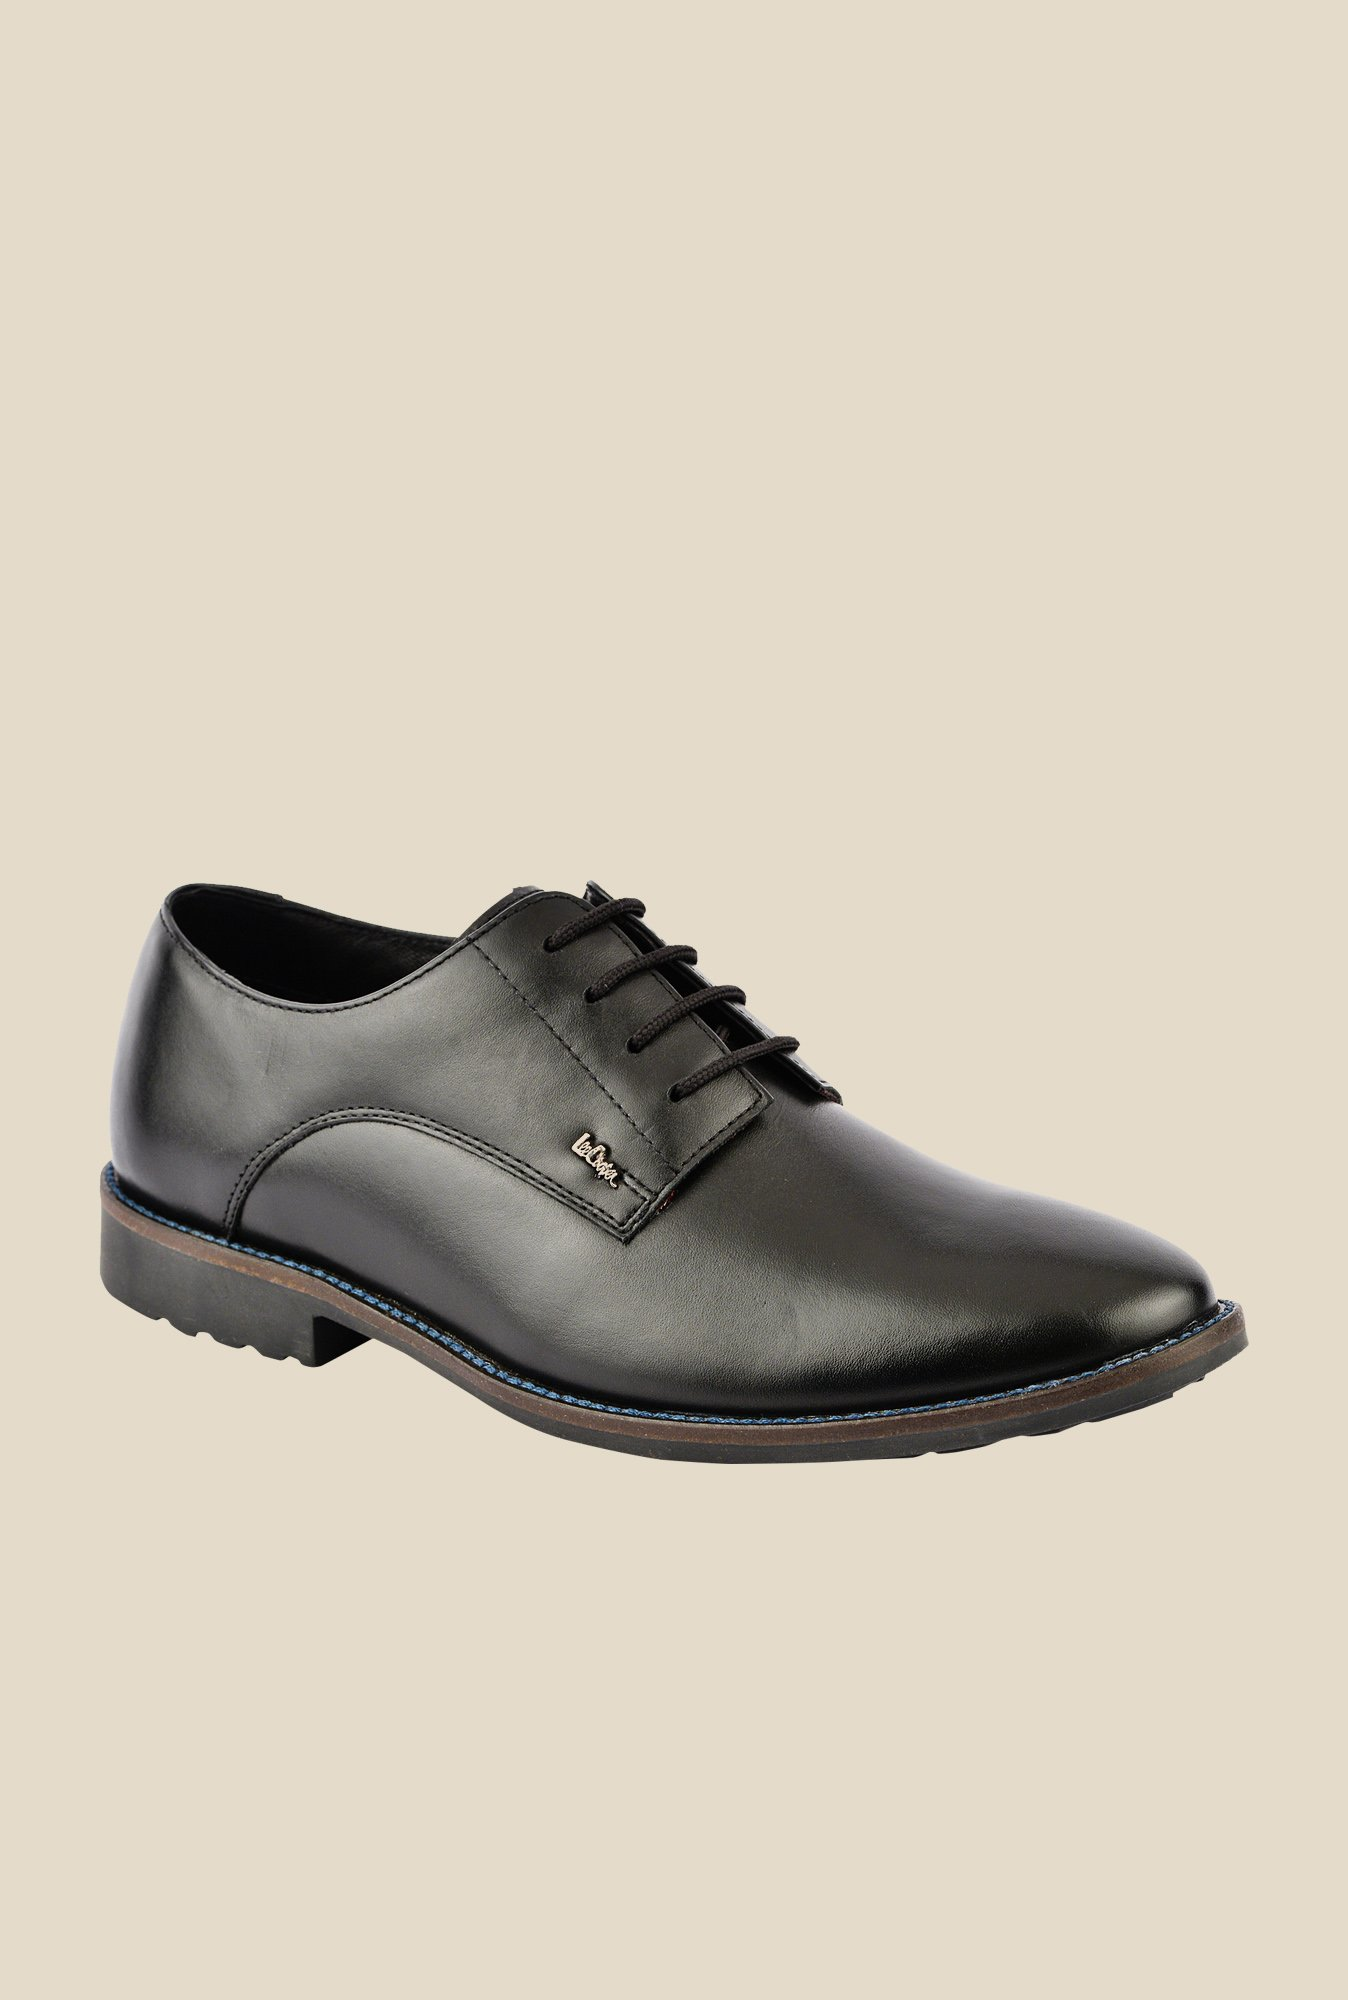 Lee Cooper Black Derby Shoes